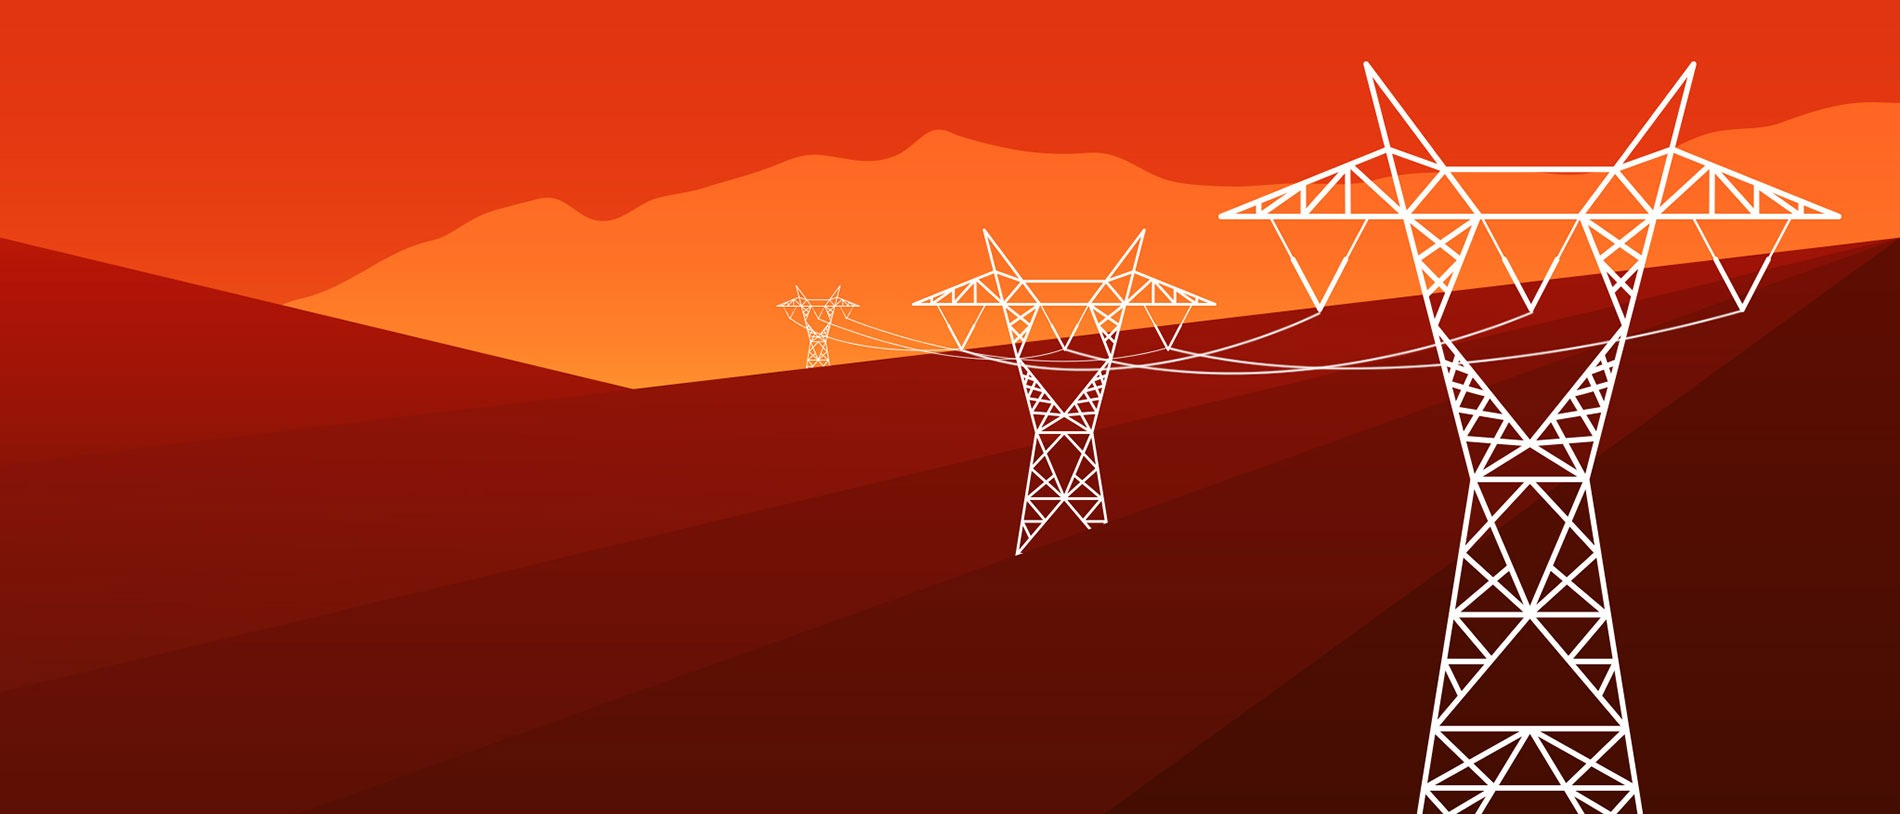 Illustration energy infrastructure